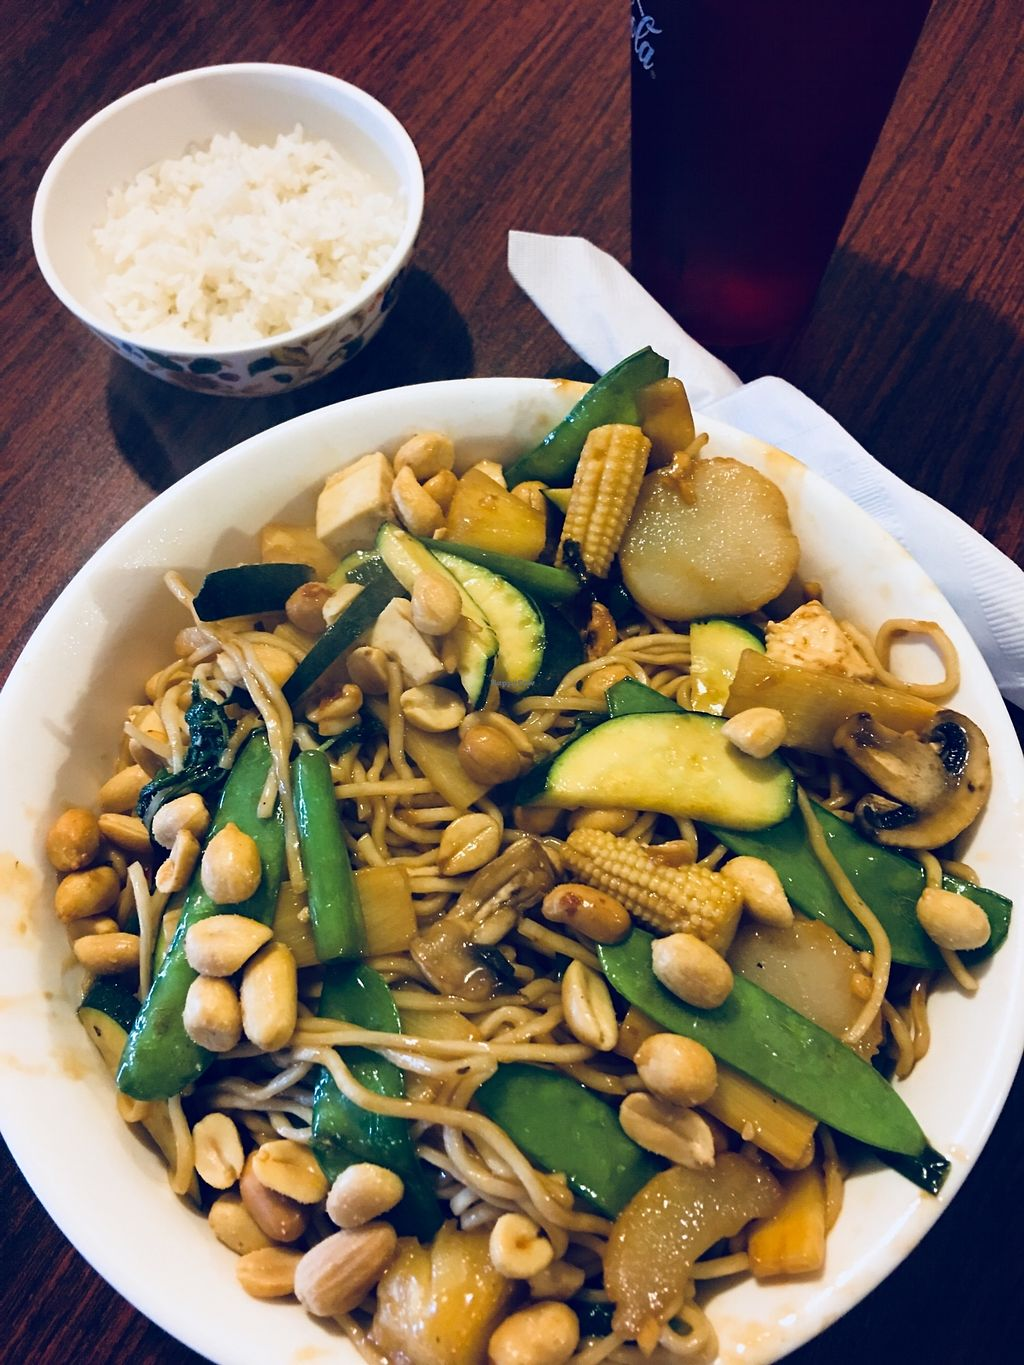 """Photo of Express Lucky Star Mongolian  by <a href=""""/members/profile/ChereseTarter"""">ChereseTarter</a> <br/>Vegan Mongolian BBQ <br/> April 12, 2018  - <a href='/contact/abuse/image/117214/384250'>Report</a>"""